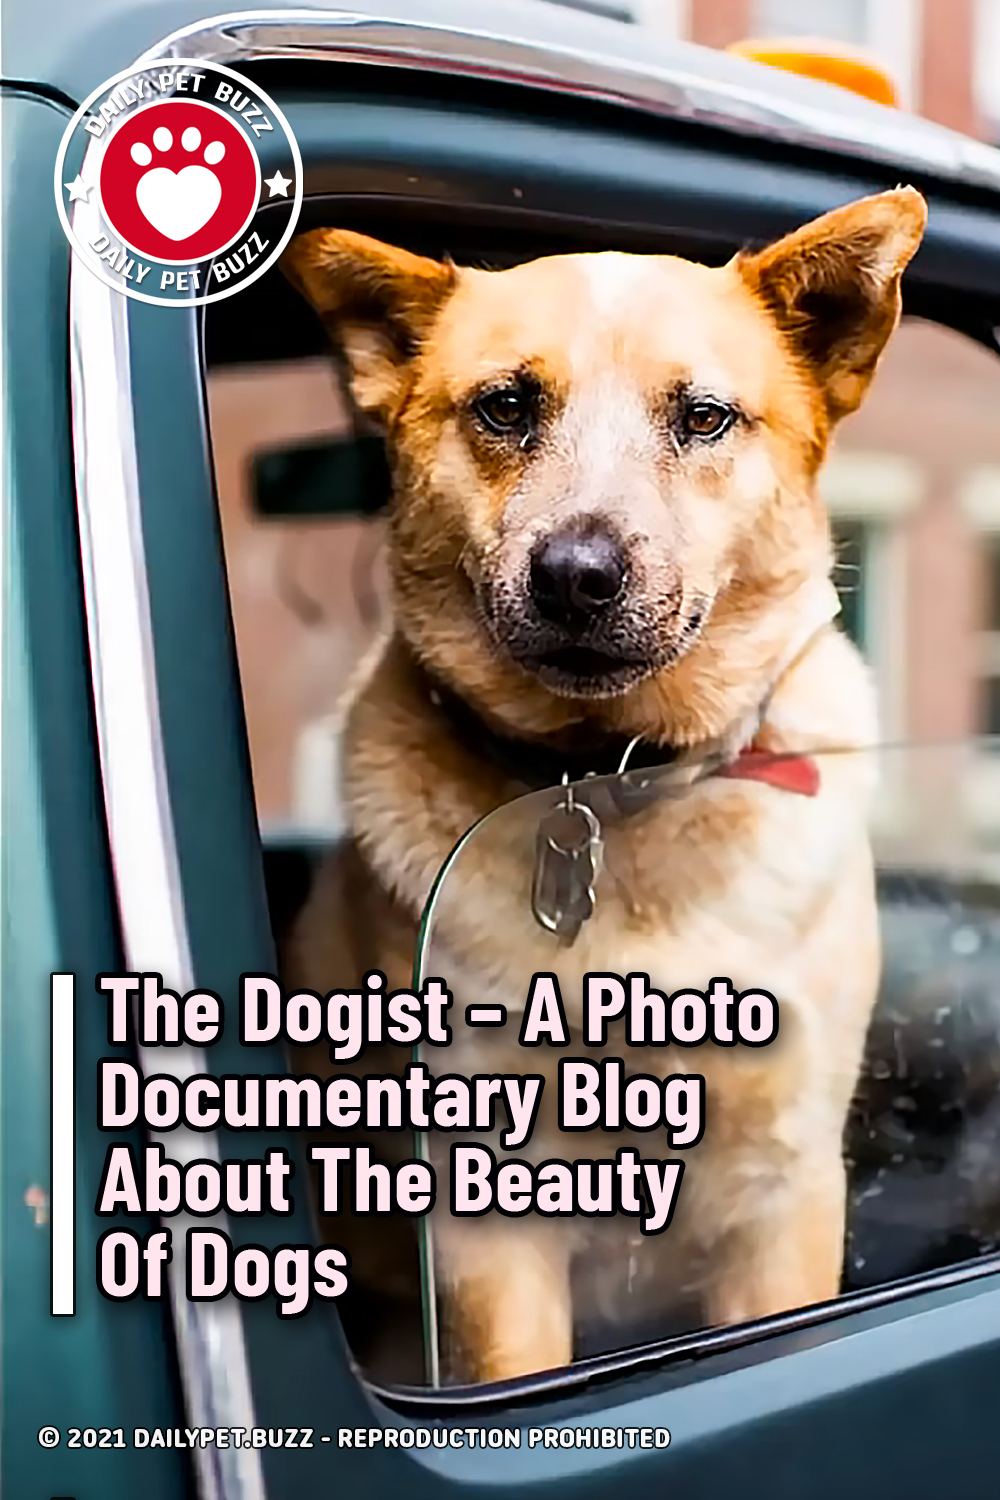 The Dogist – A Photo Documentary Blog About The Beauty Of Dogs